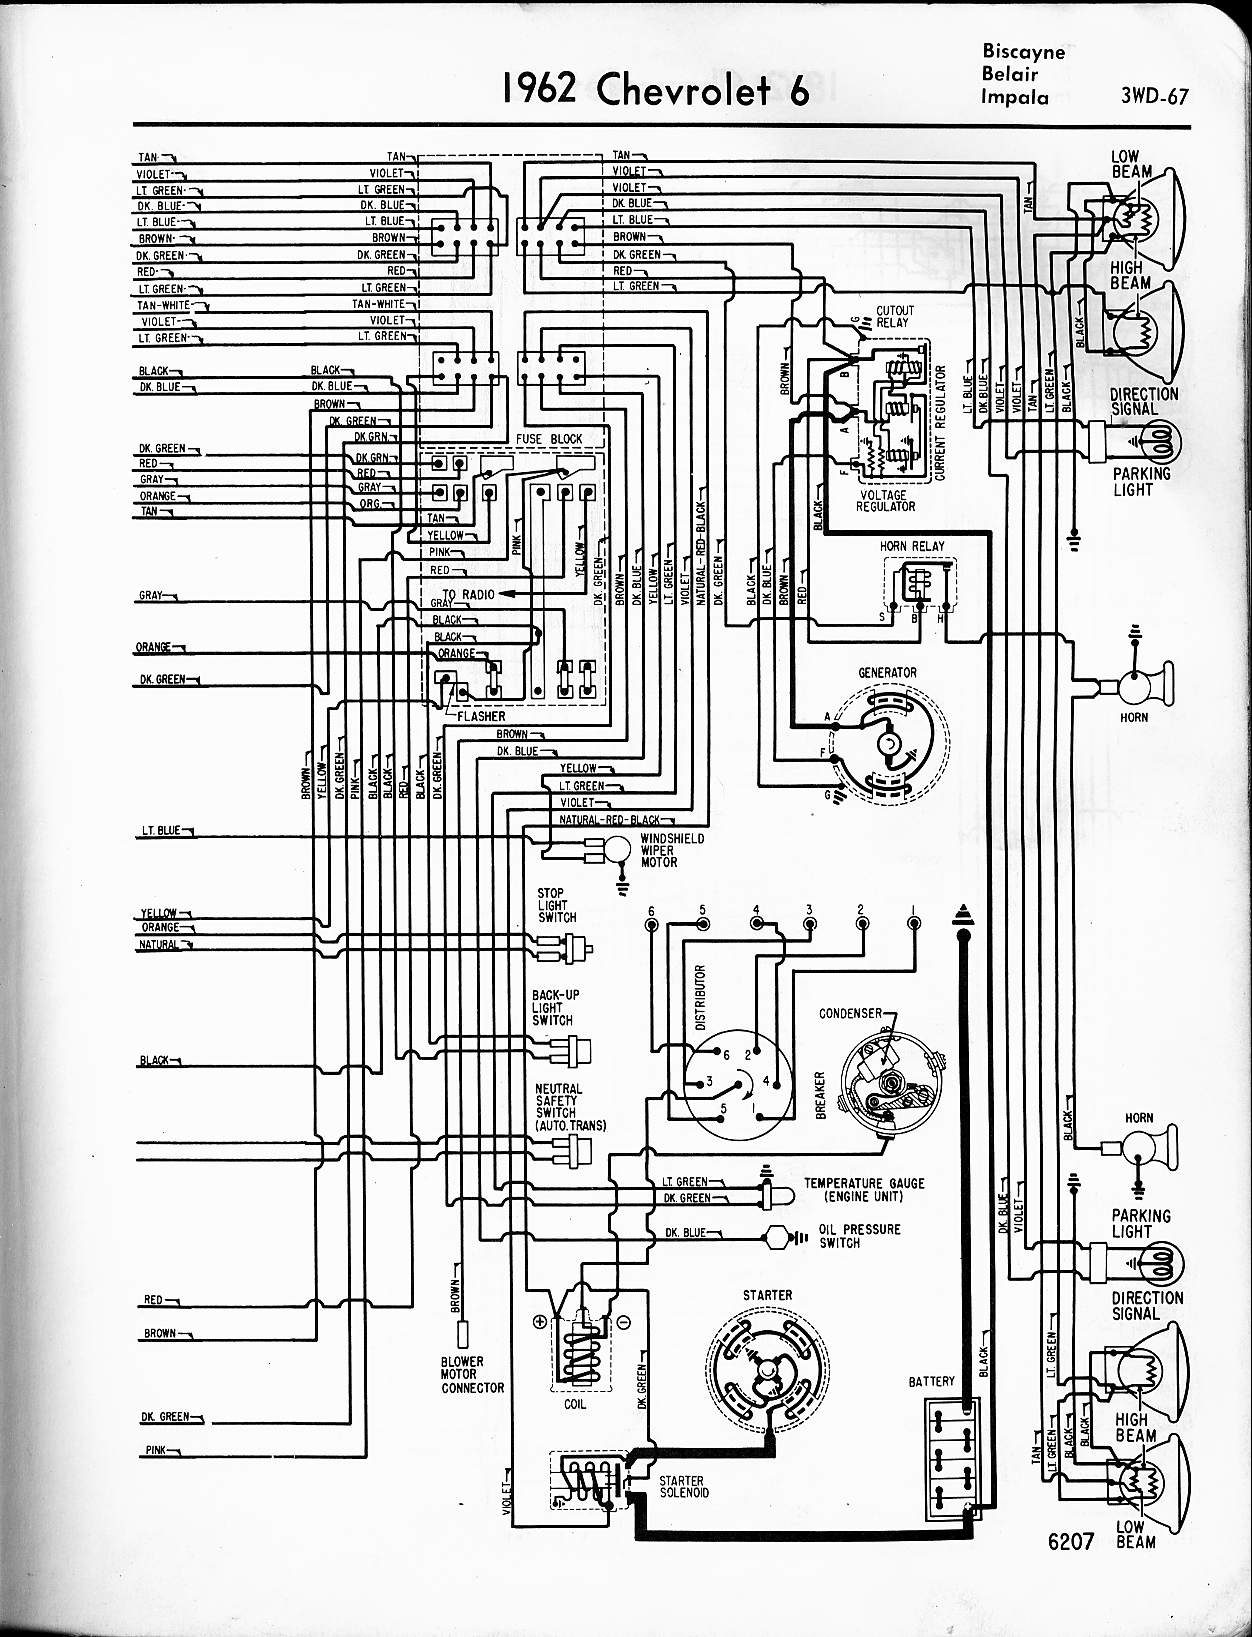 jvc kd sr60 wiring harness   26 wiring diagram images